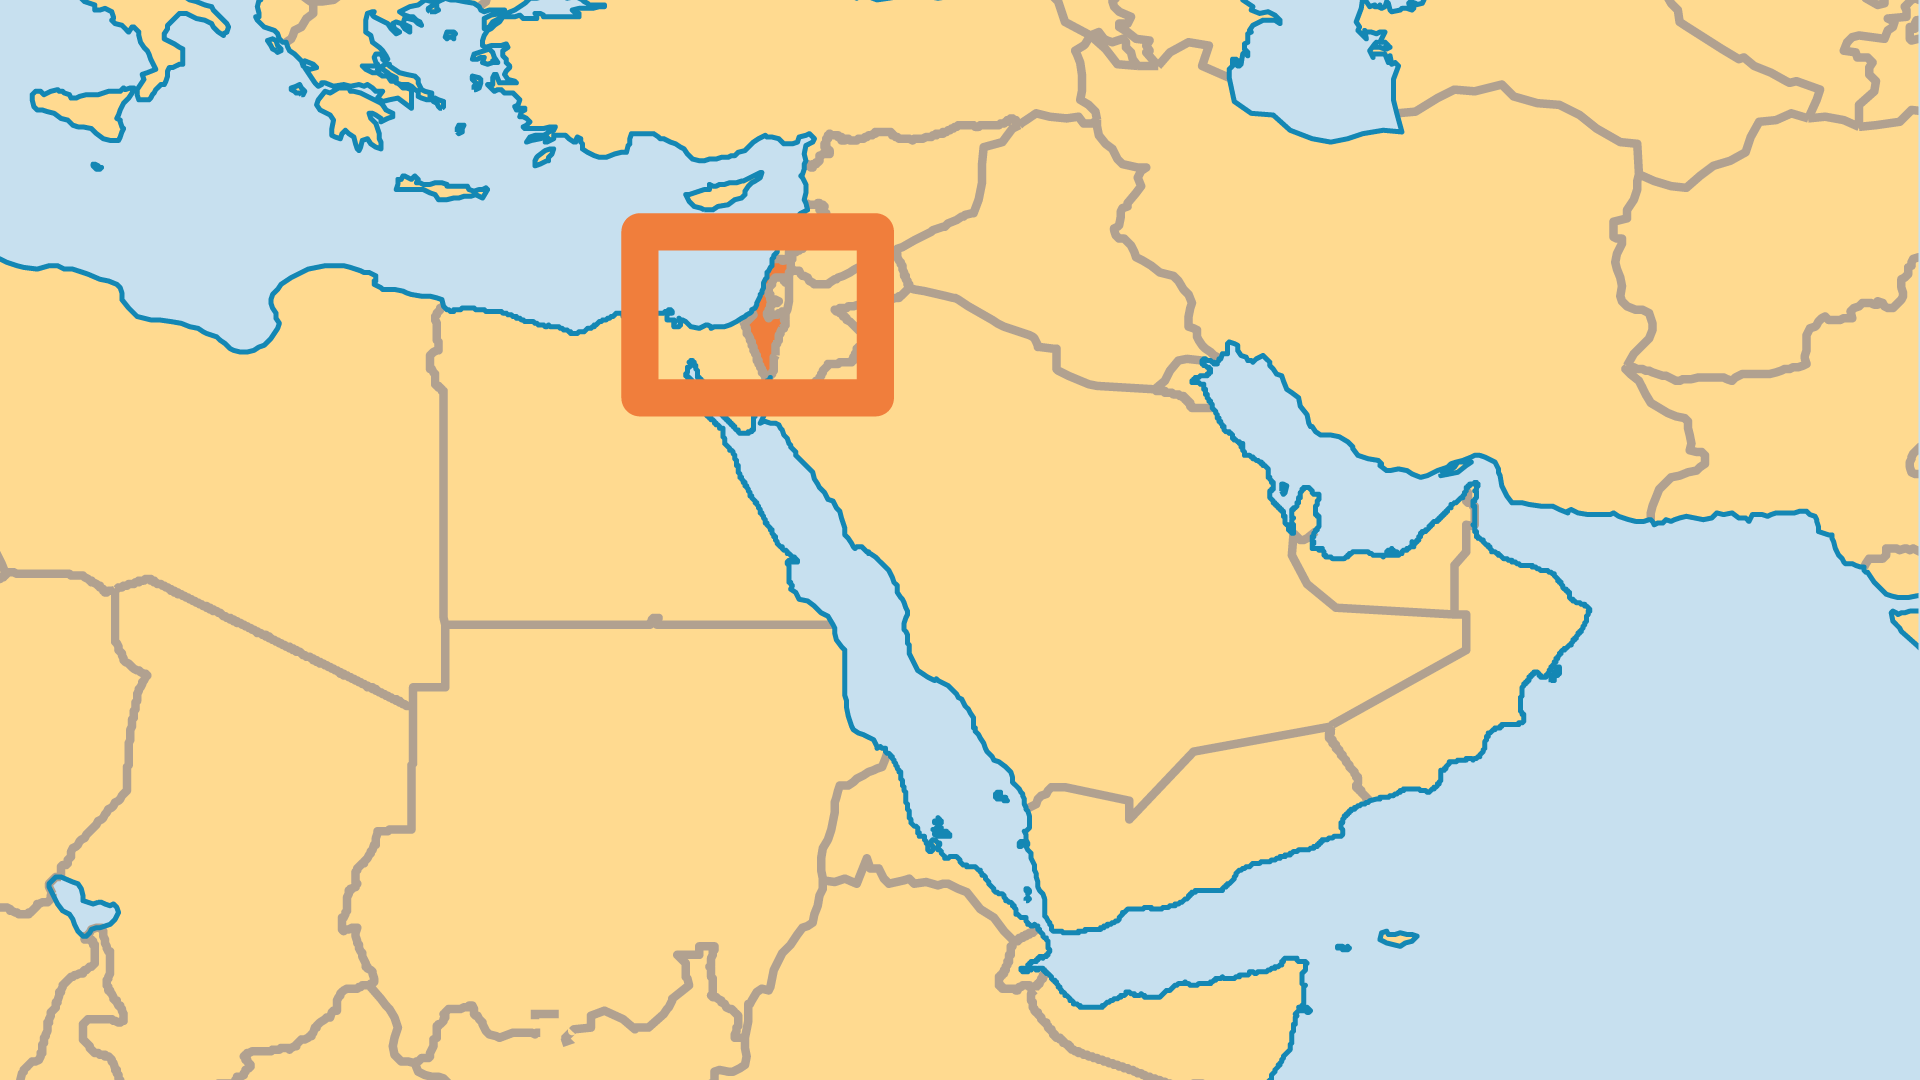 Locator Map for Israel